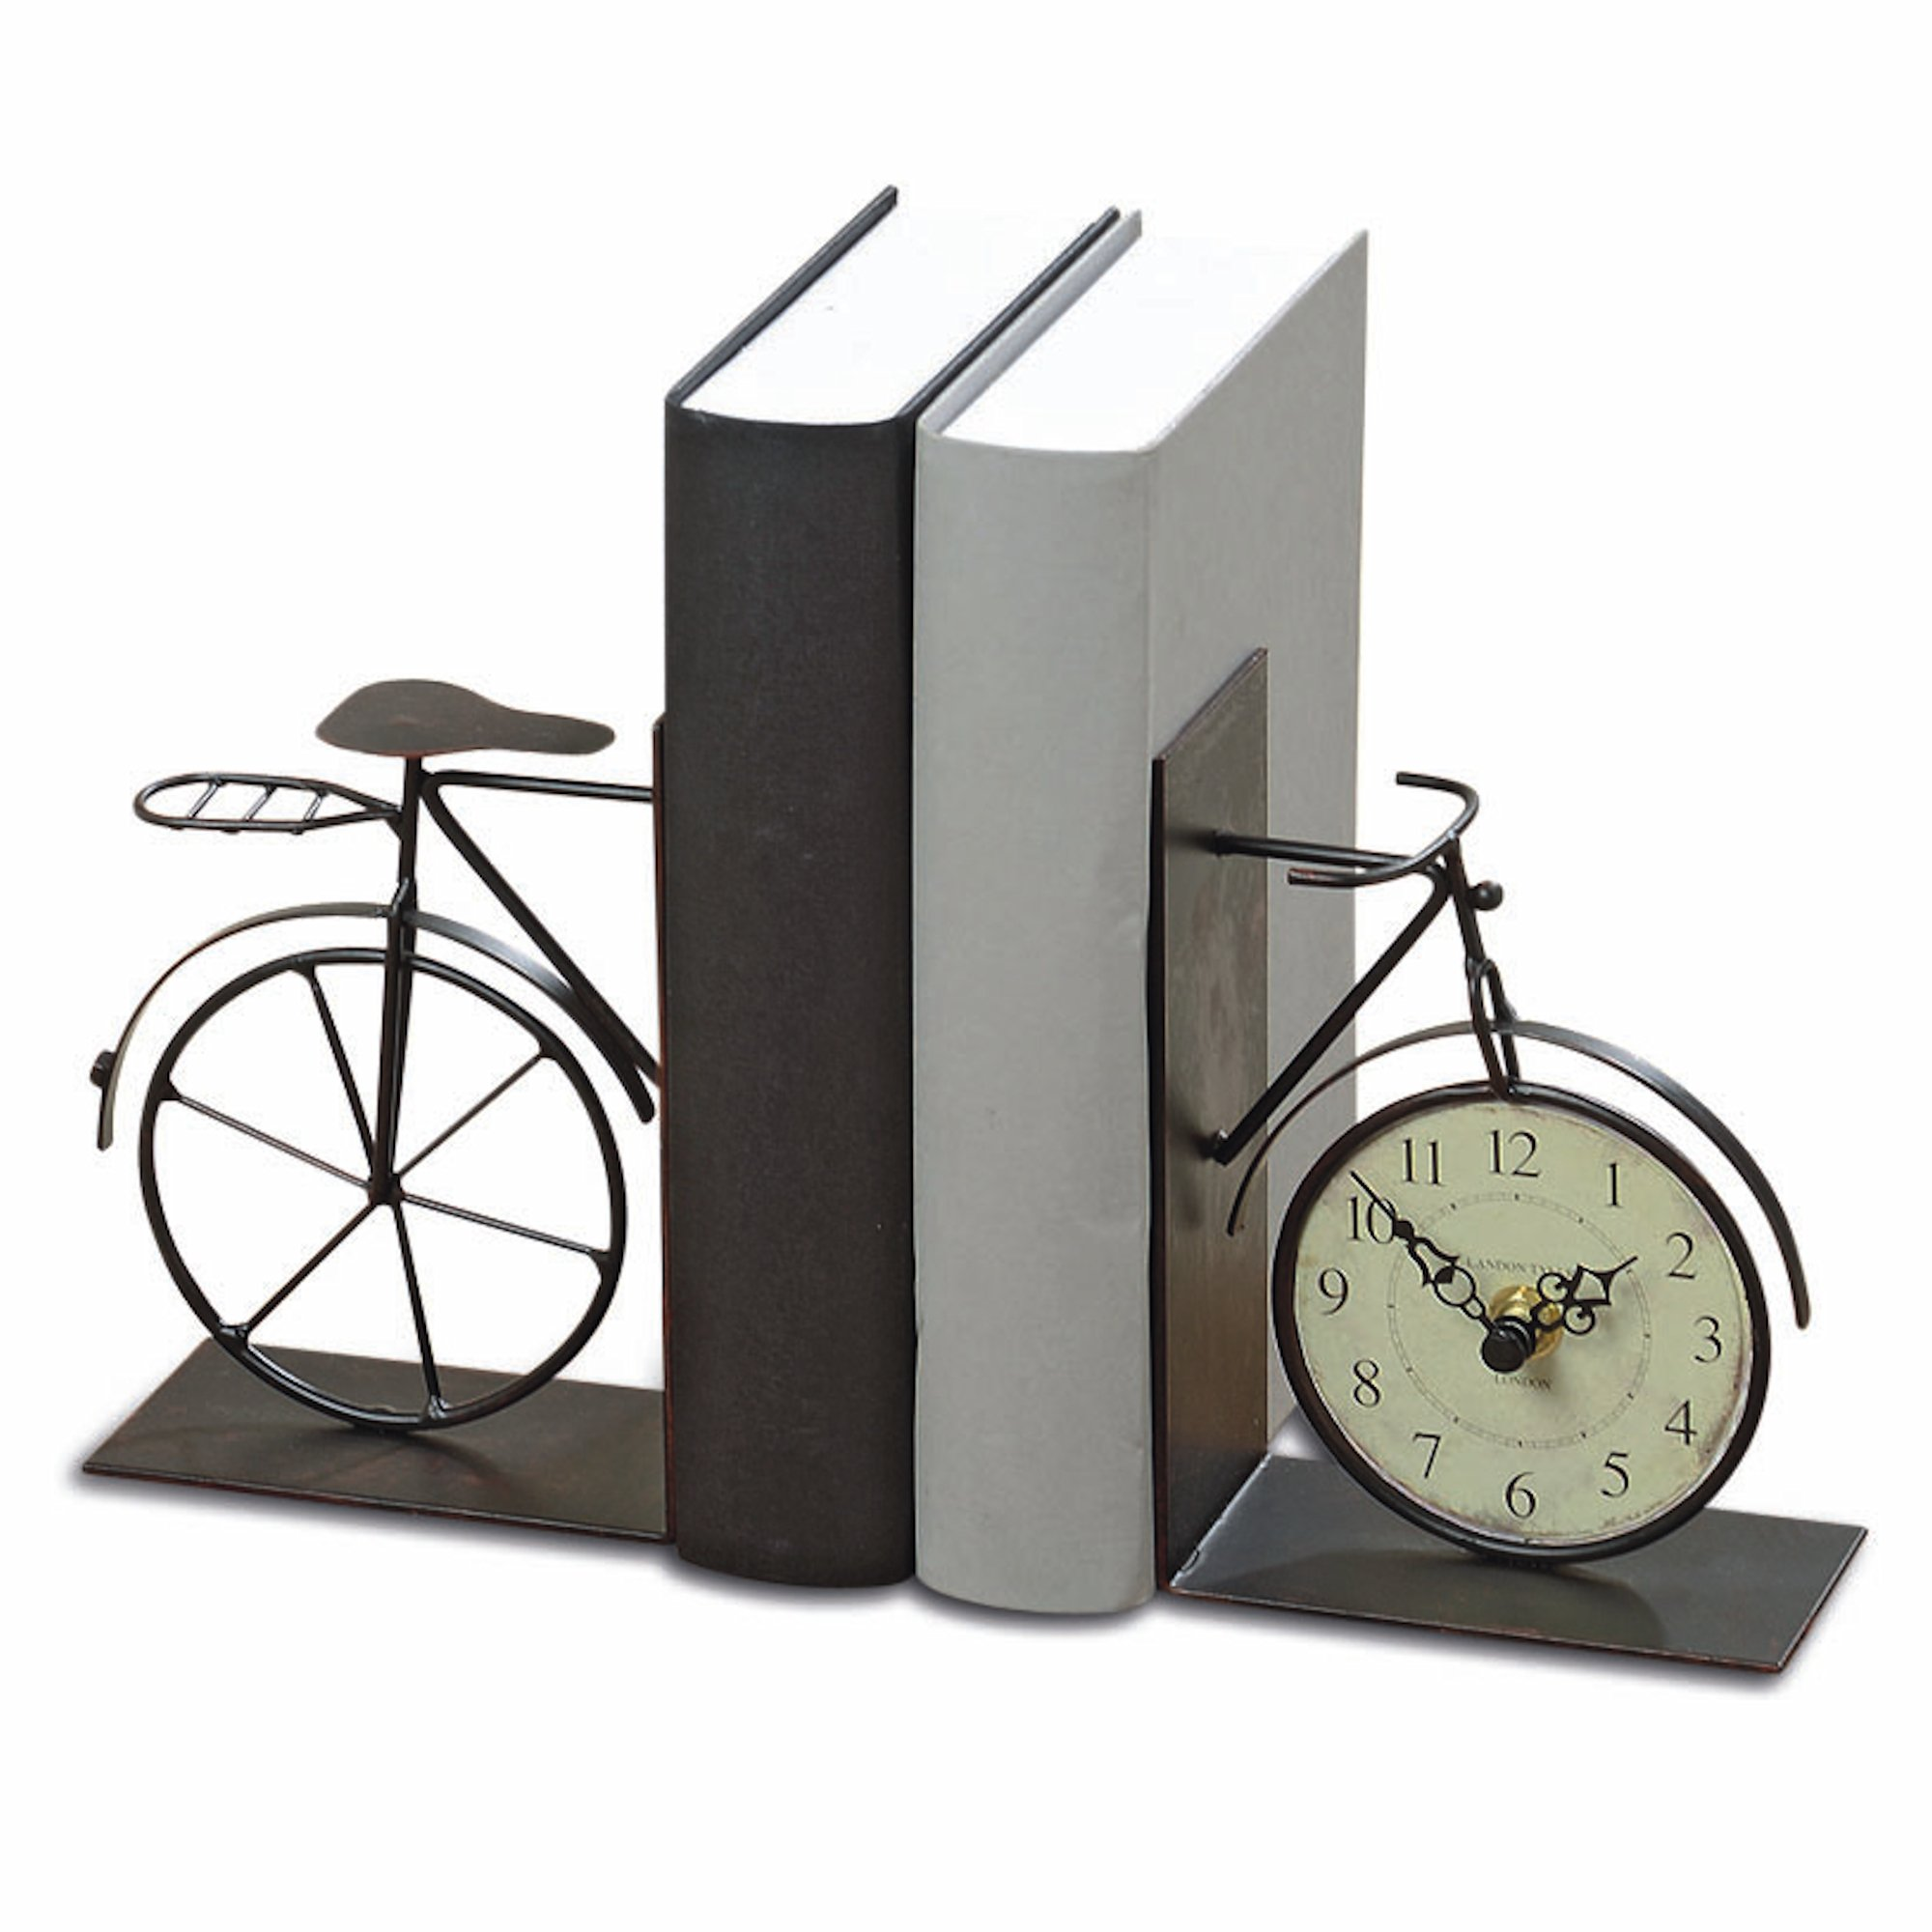 Whole House Worlds The Industrial Chic Bicycle Bookends with Analog Clock, Set of 2, Handcrafted of Bent and Welded Black Iron, Combined 8 5/8? Long, 1 AA Battery (Not Included,) By by Whole House Worlds